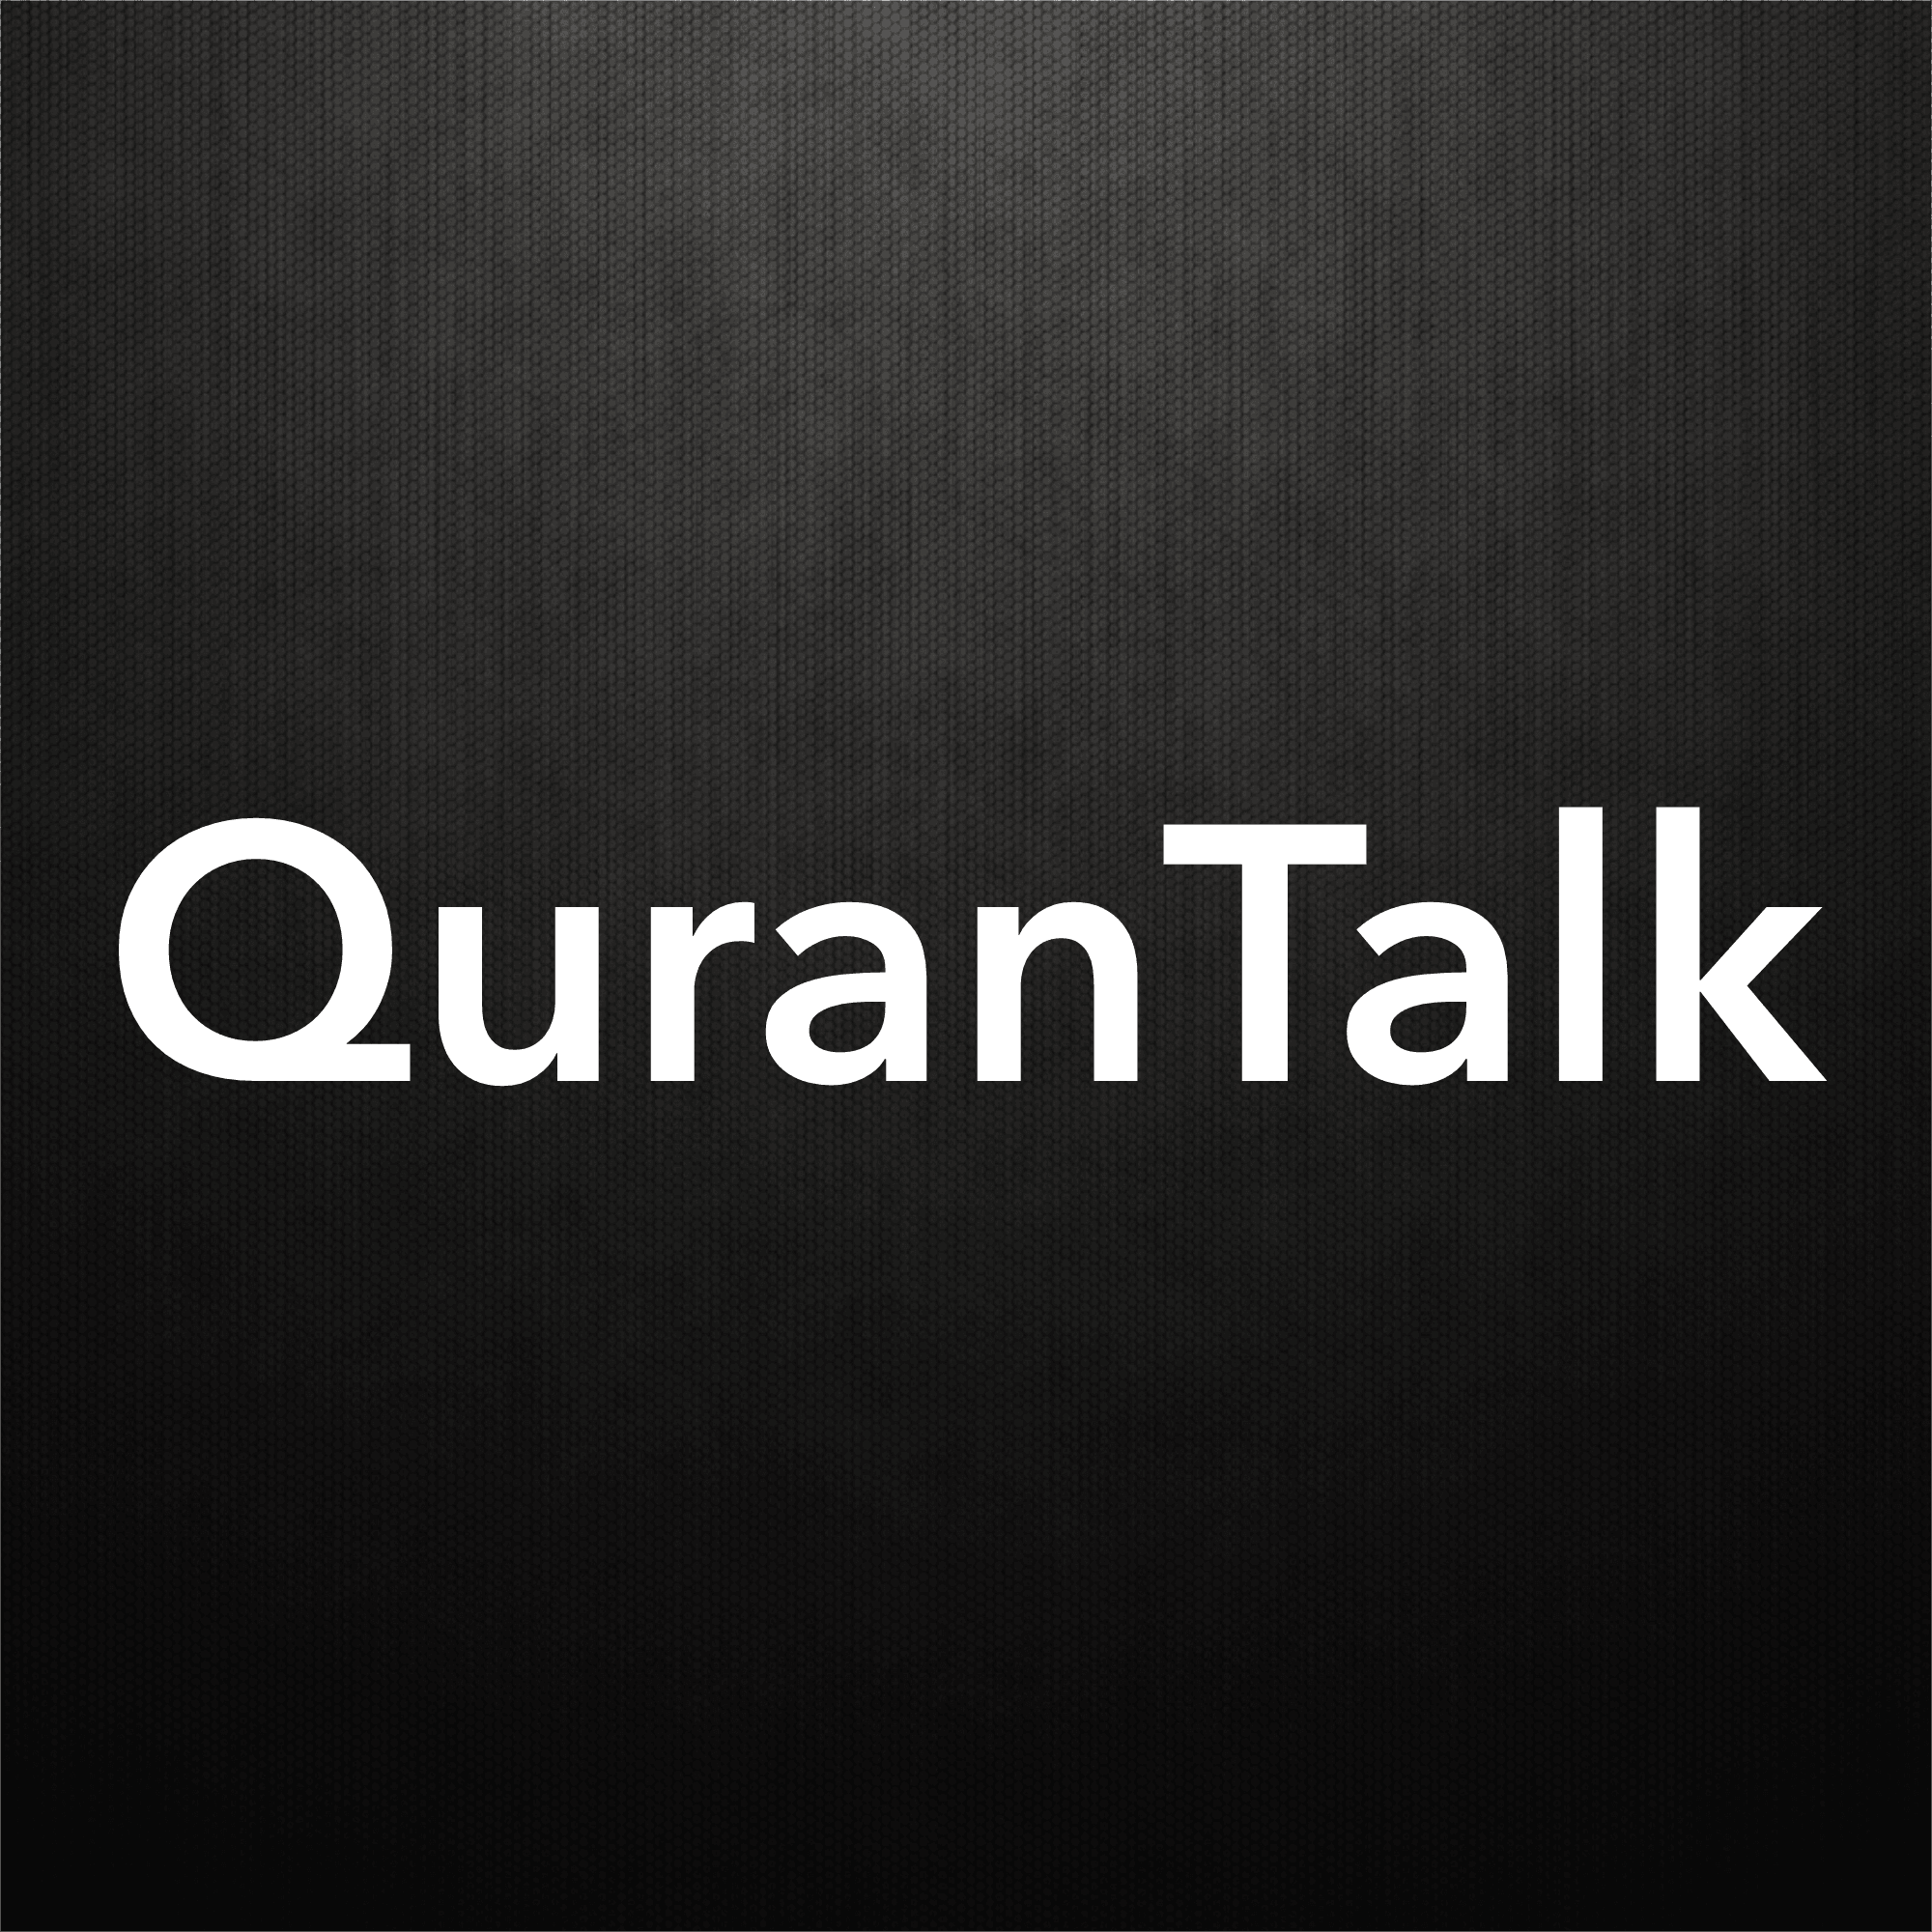 Quran Talk - God Alone, Quran Alone, Submission = True Islam